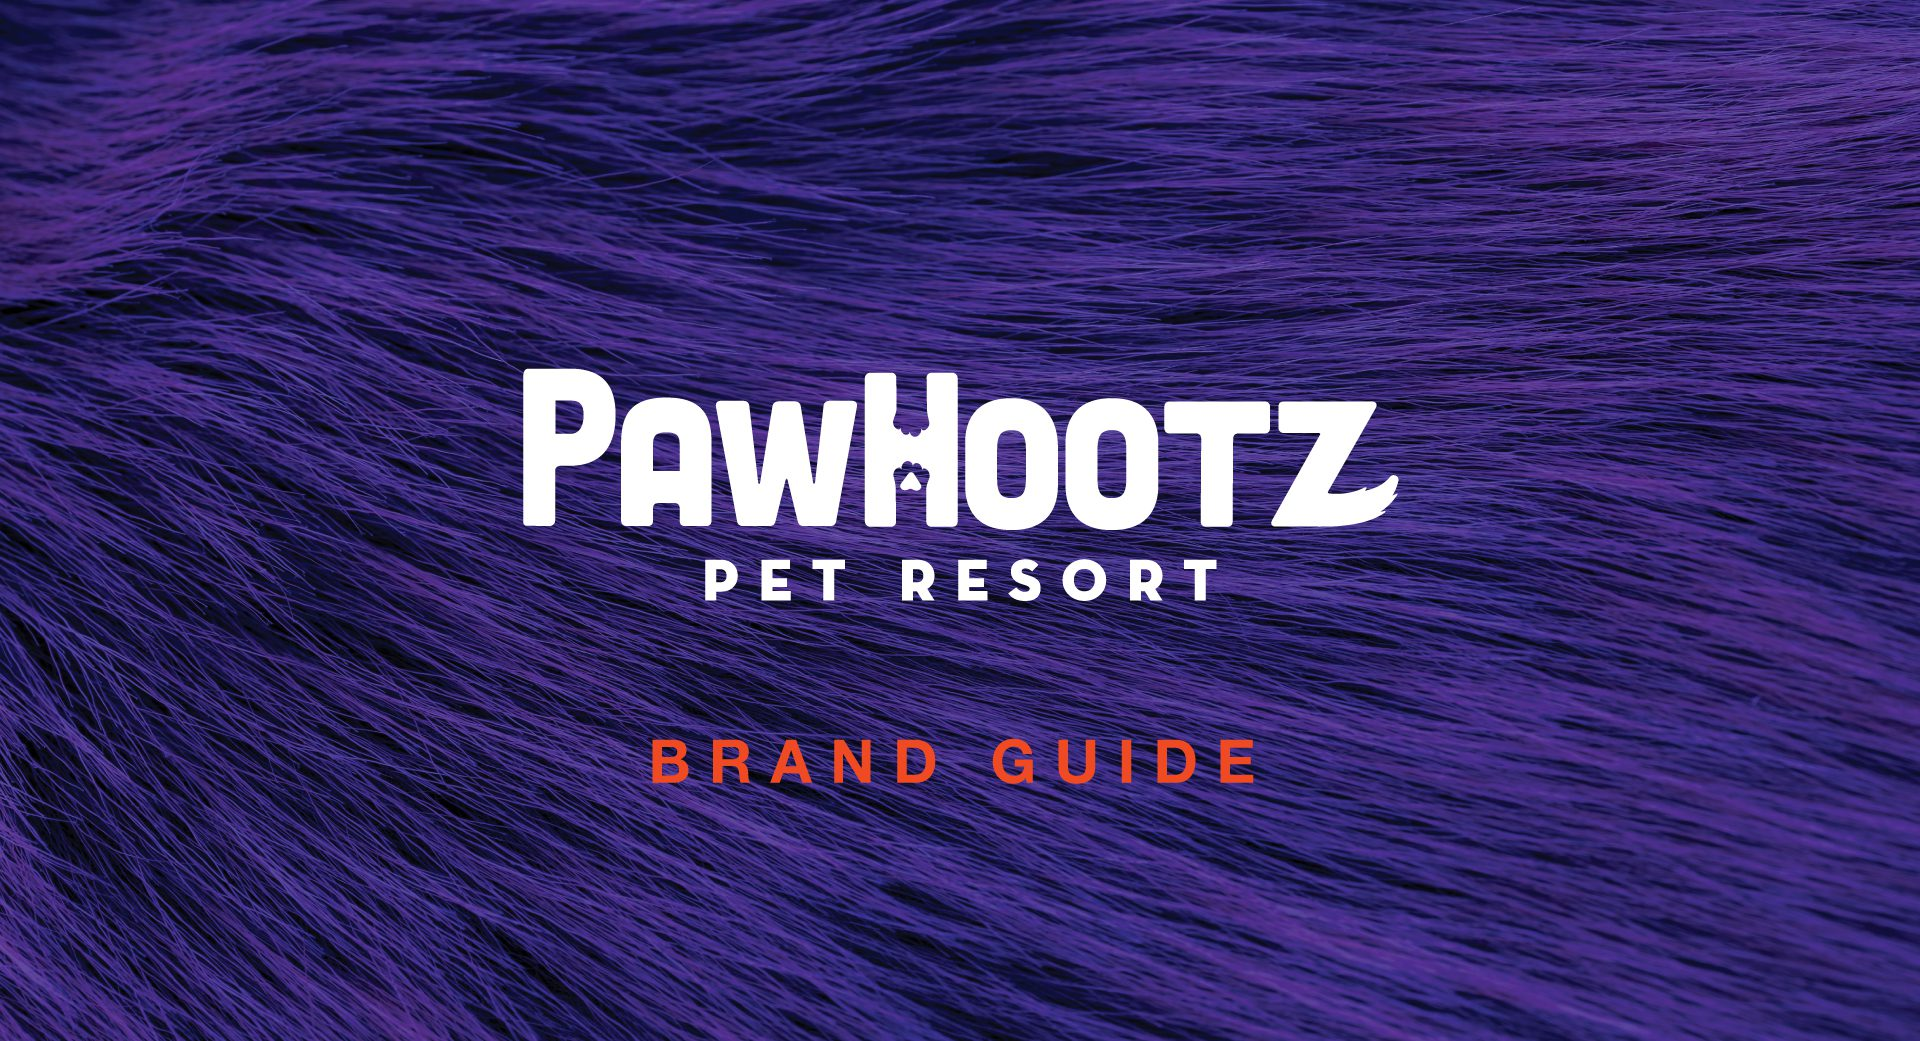 pawhootz pet resort brand guide design